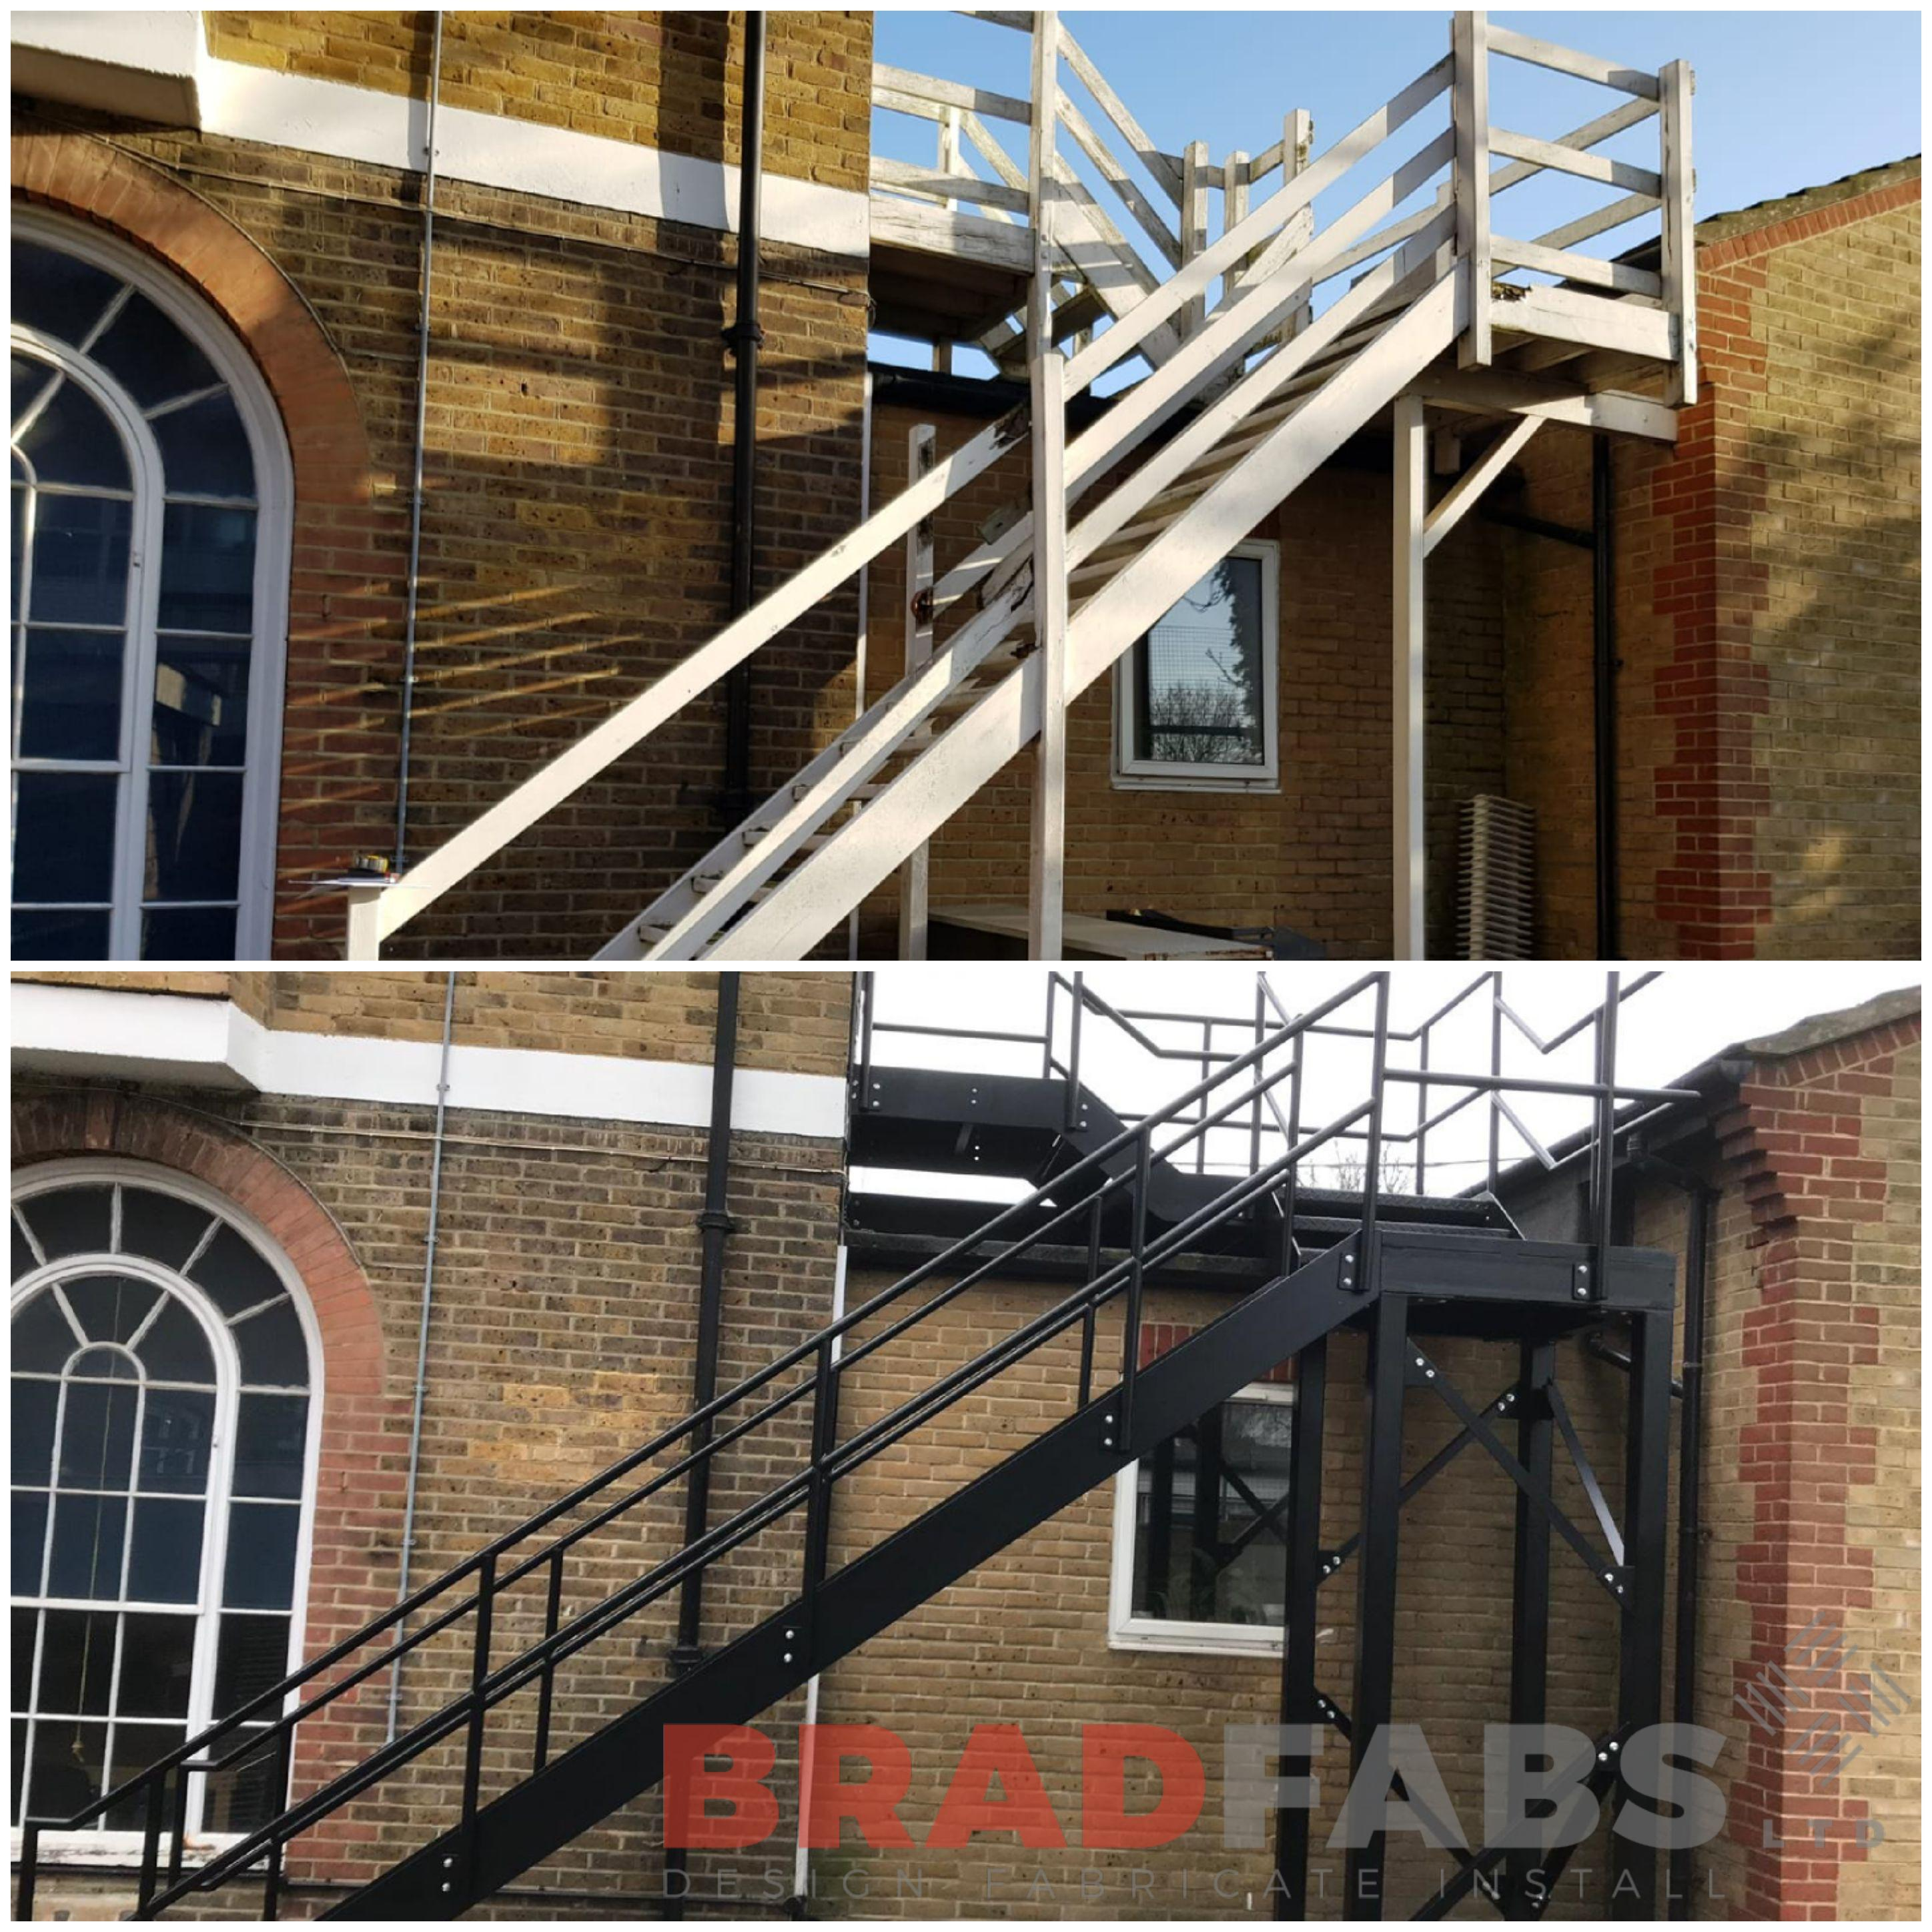 Bradfabs, transformation fire escape, mild steel fire exit, transformations, mild steel fire escape, powder coated fire escape, galvanised fire escape, durbar treads, mid and toprail balustrade